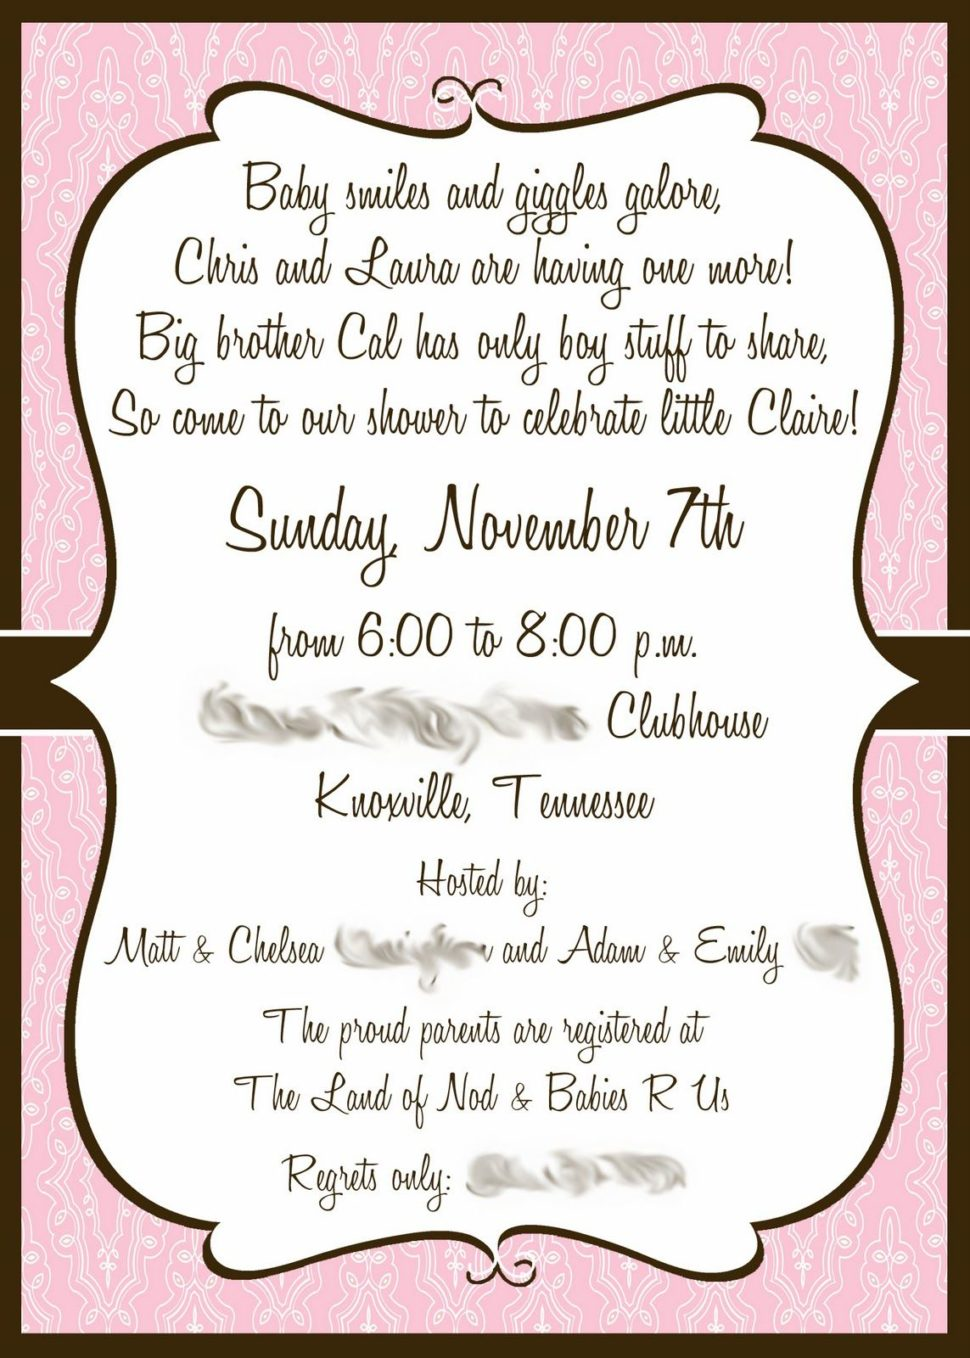 Medium Size of Baby Shower:delightful Baby Shower Invitation Wording Picture Designs Google Image Result For Http 1bpblogspotcom Enfk1pe42ga Google Image Result For Http 1bpblogspotcom Enfk1pe42ga Tlif7wezpci Aaaaaaaaazm Bwdwv1glrac S1600 Baby2bshower2binvitation2bfor2bwebjpg